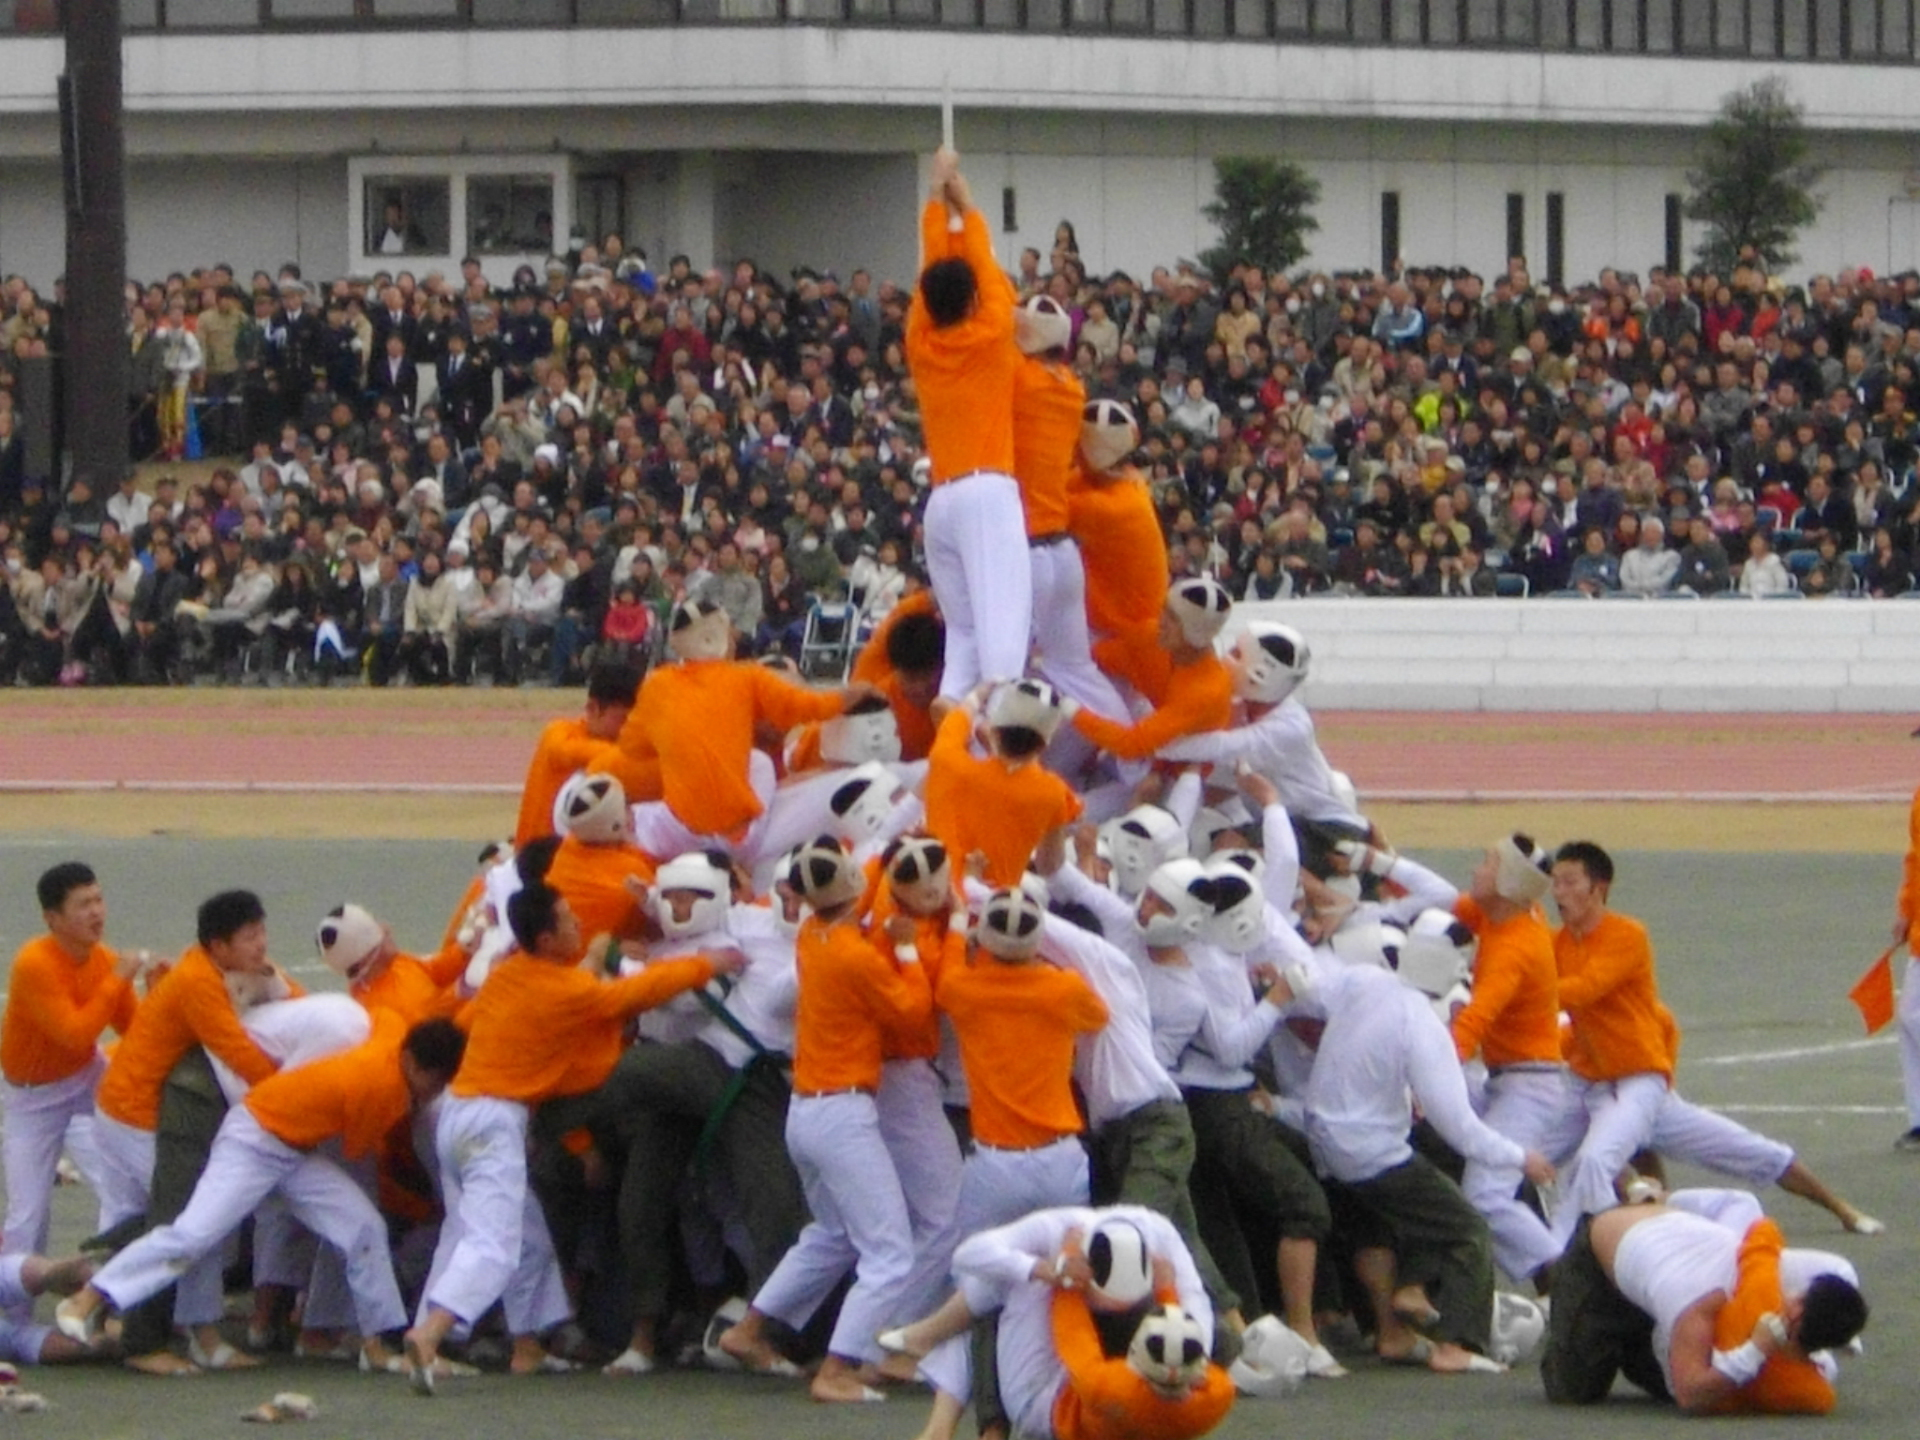 An offensive Bo Taoshi team tries to take down the opposing team's pole